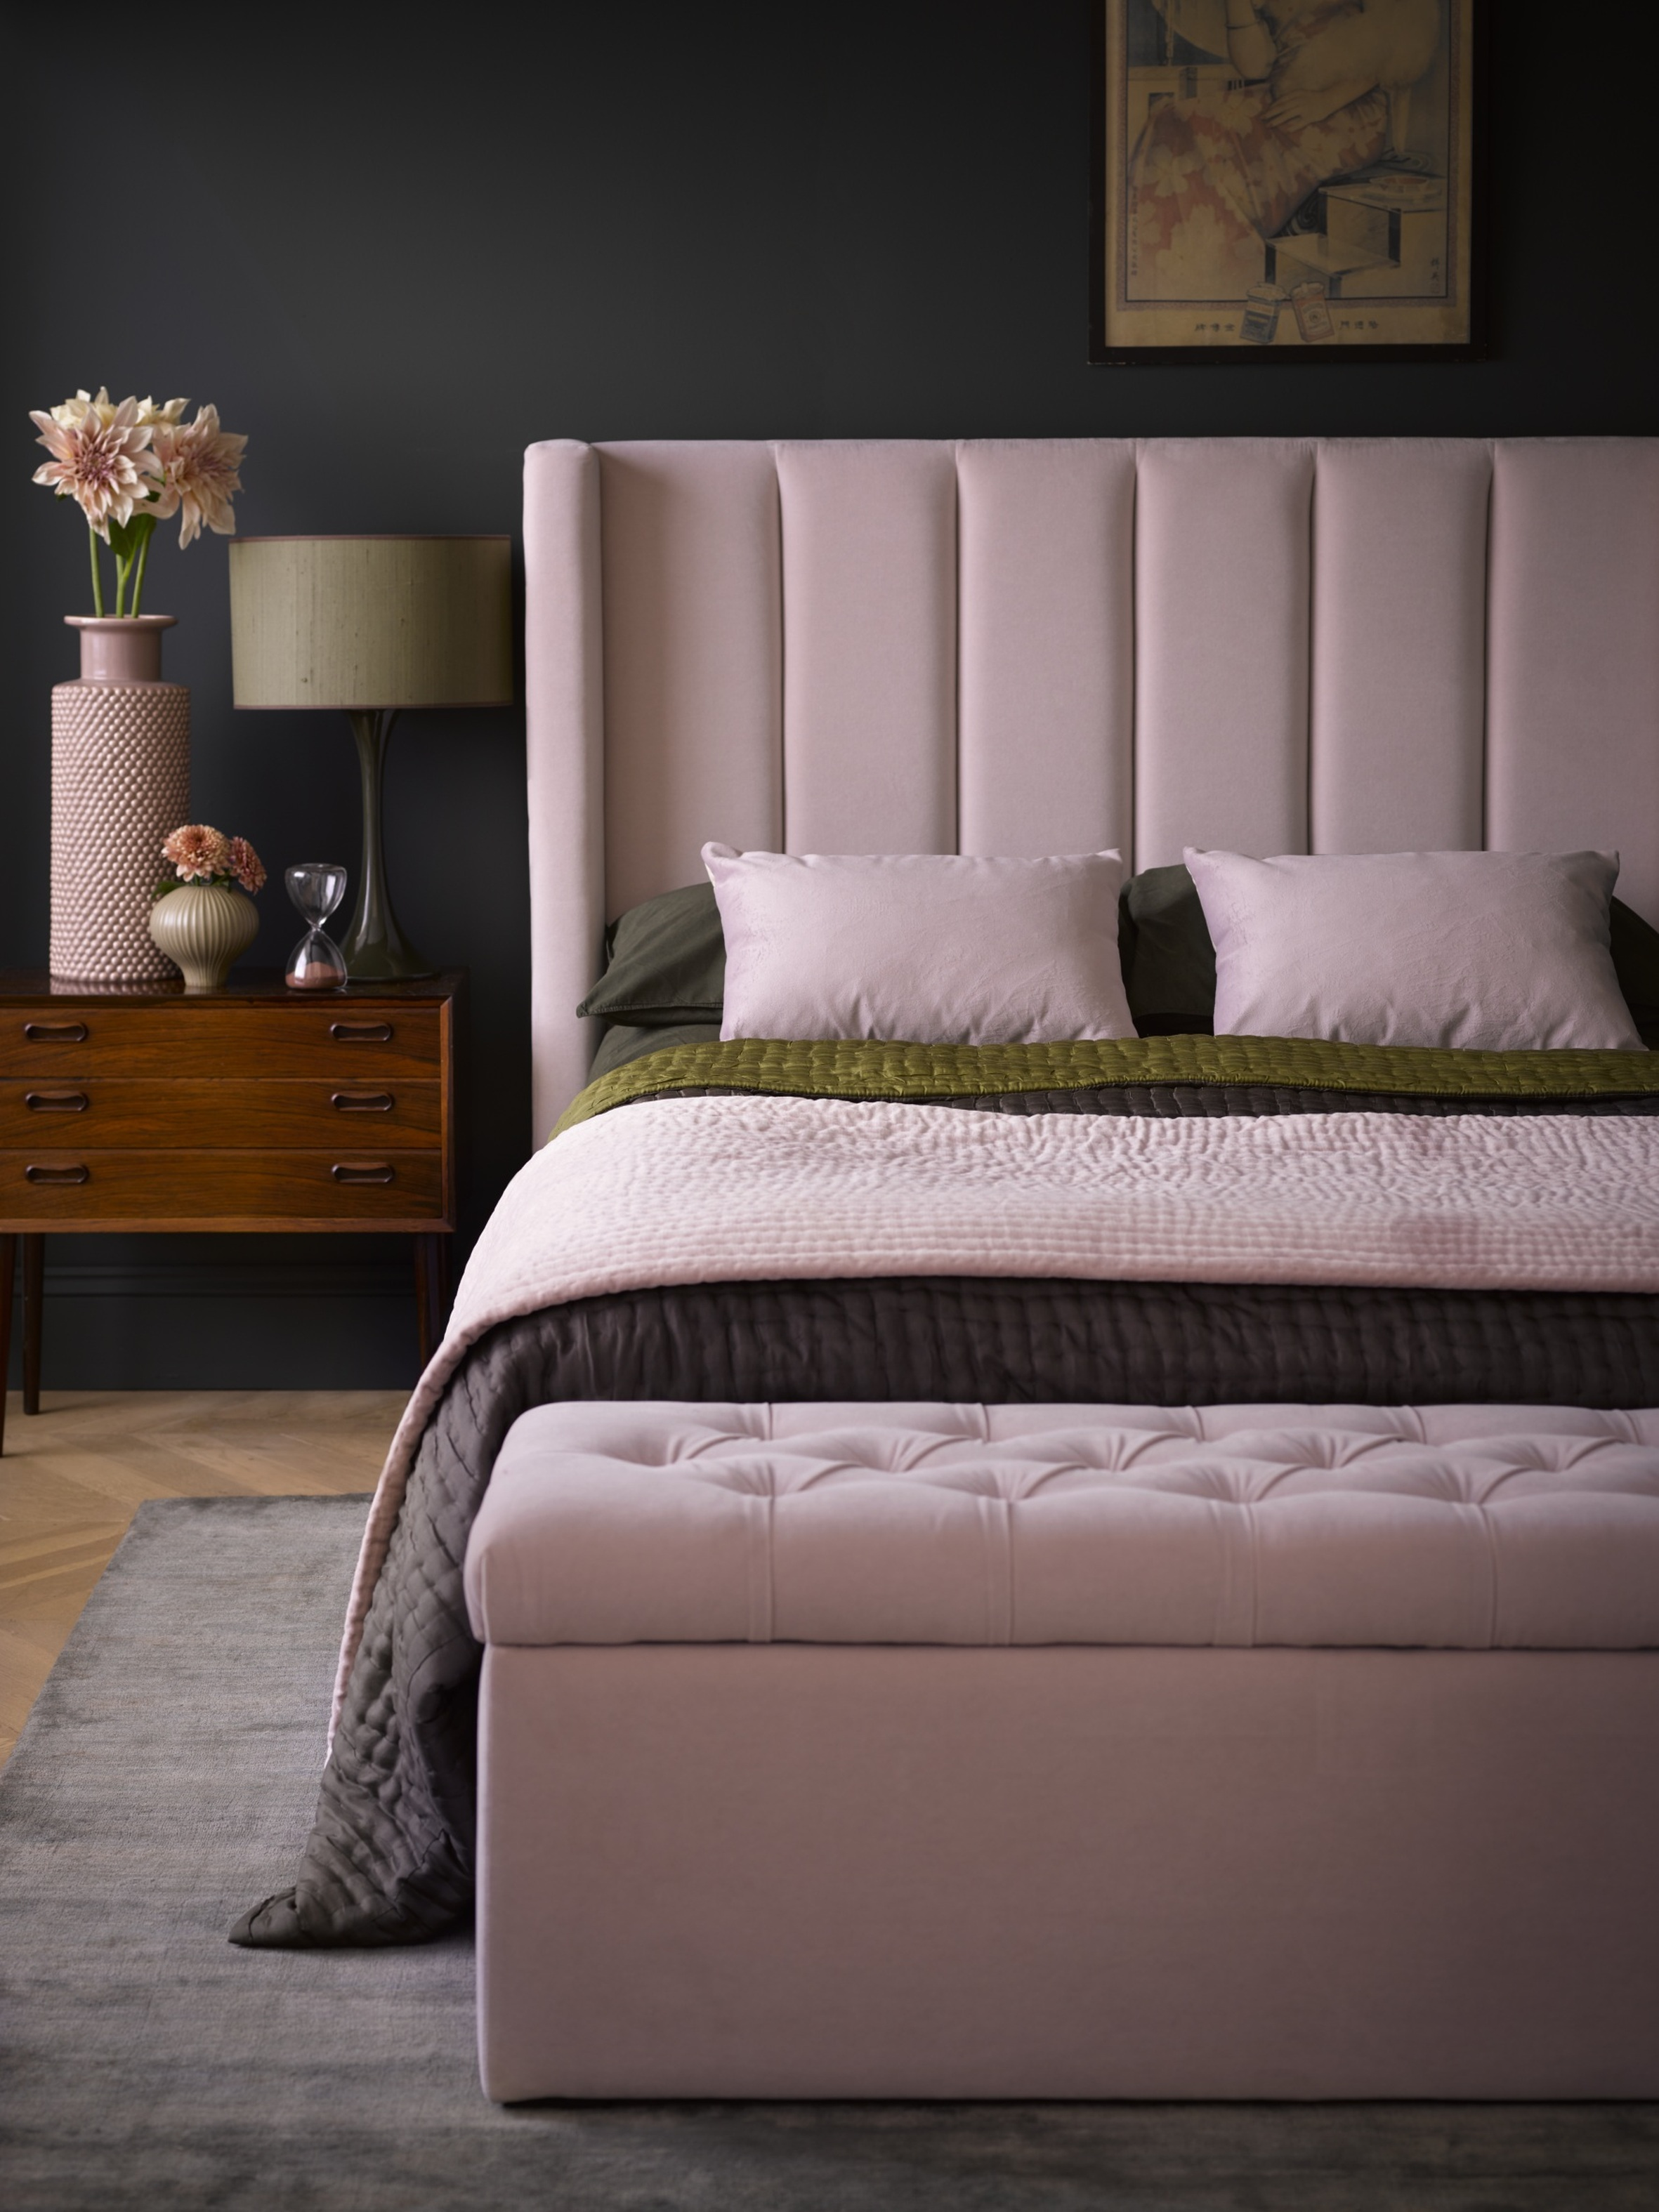 Sofa.com Cleo double bed in Lychee smart velvet.jpg